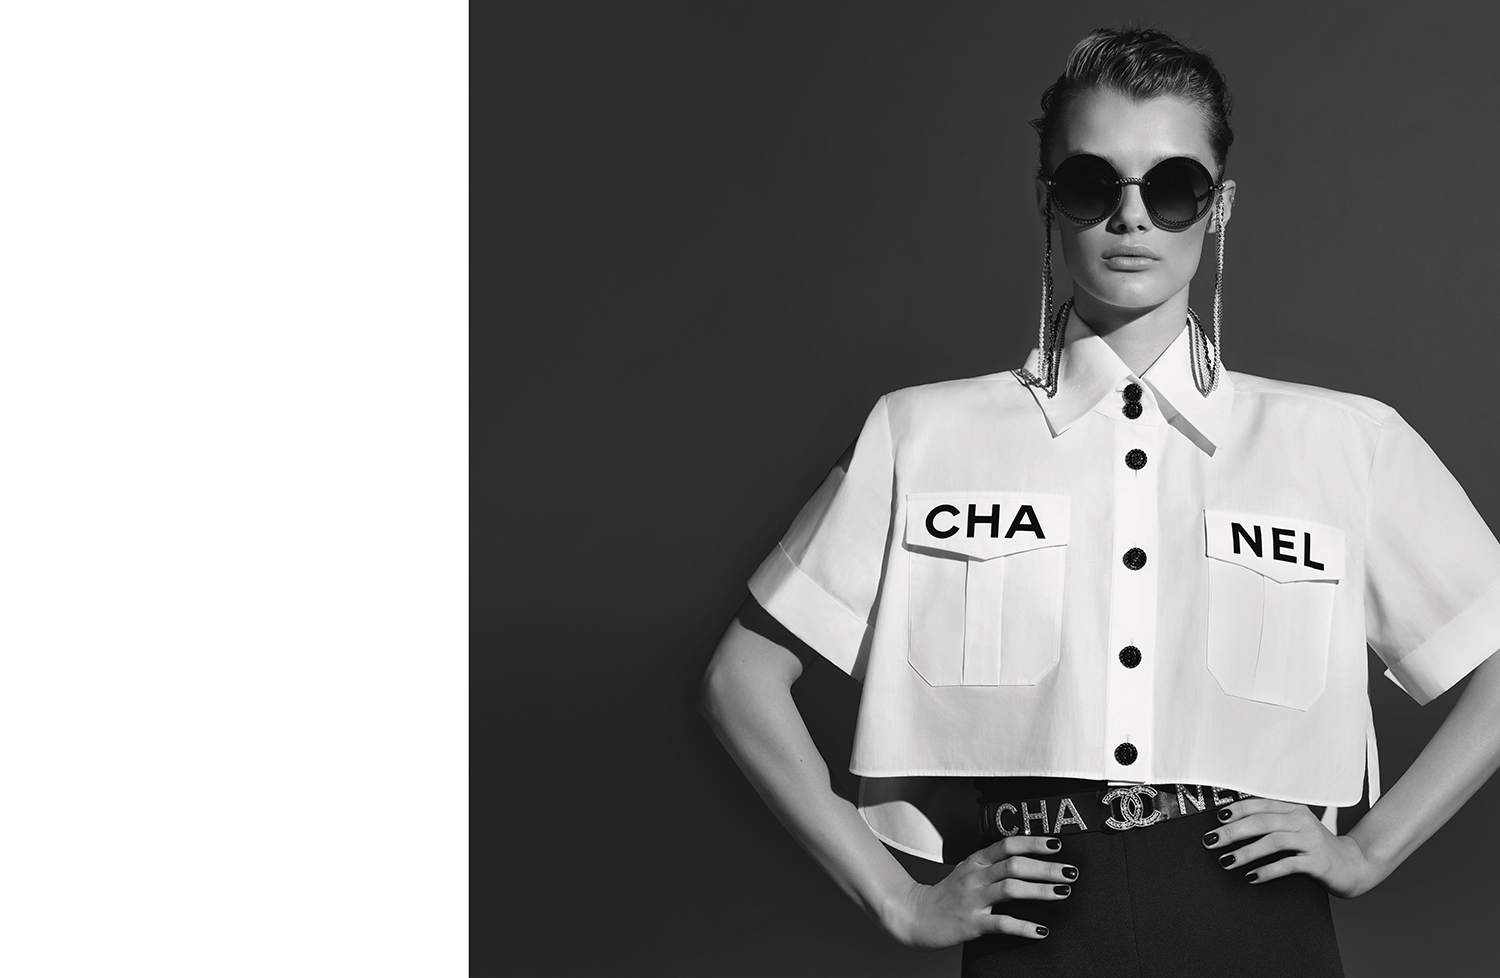 Eyewear_ad_campaign_pictures_by_Karl_Lagerfeld_LD.jpg